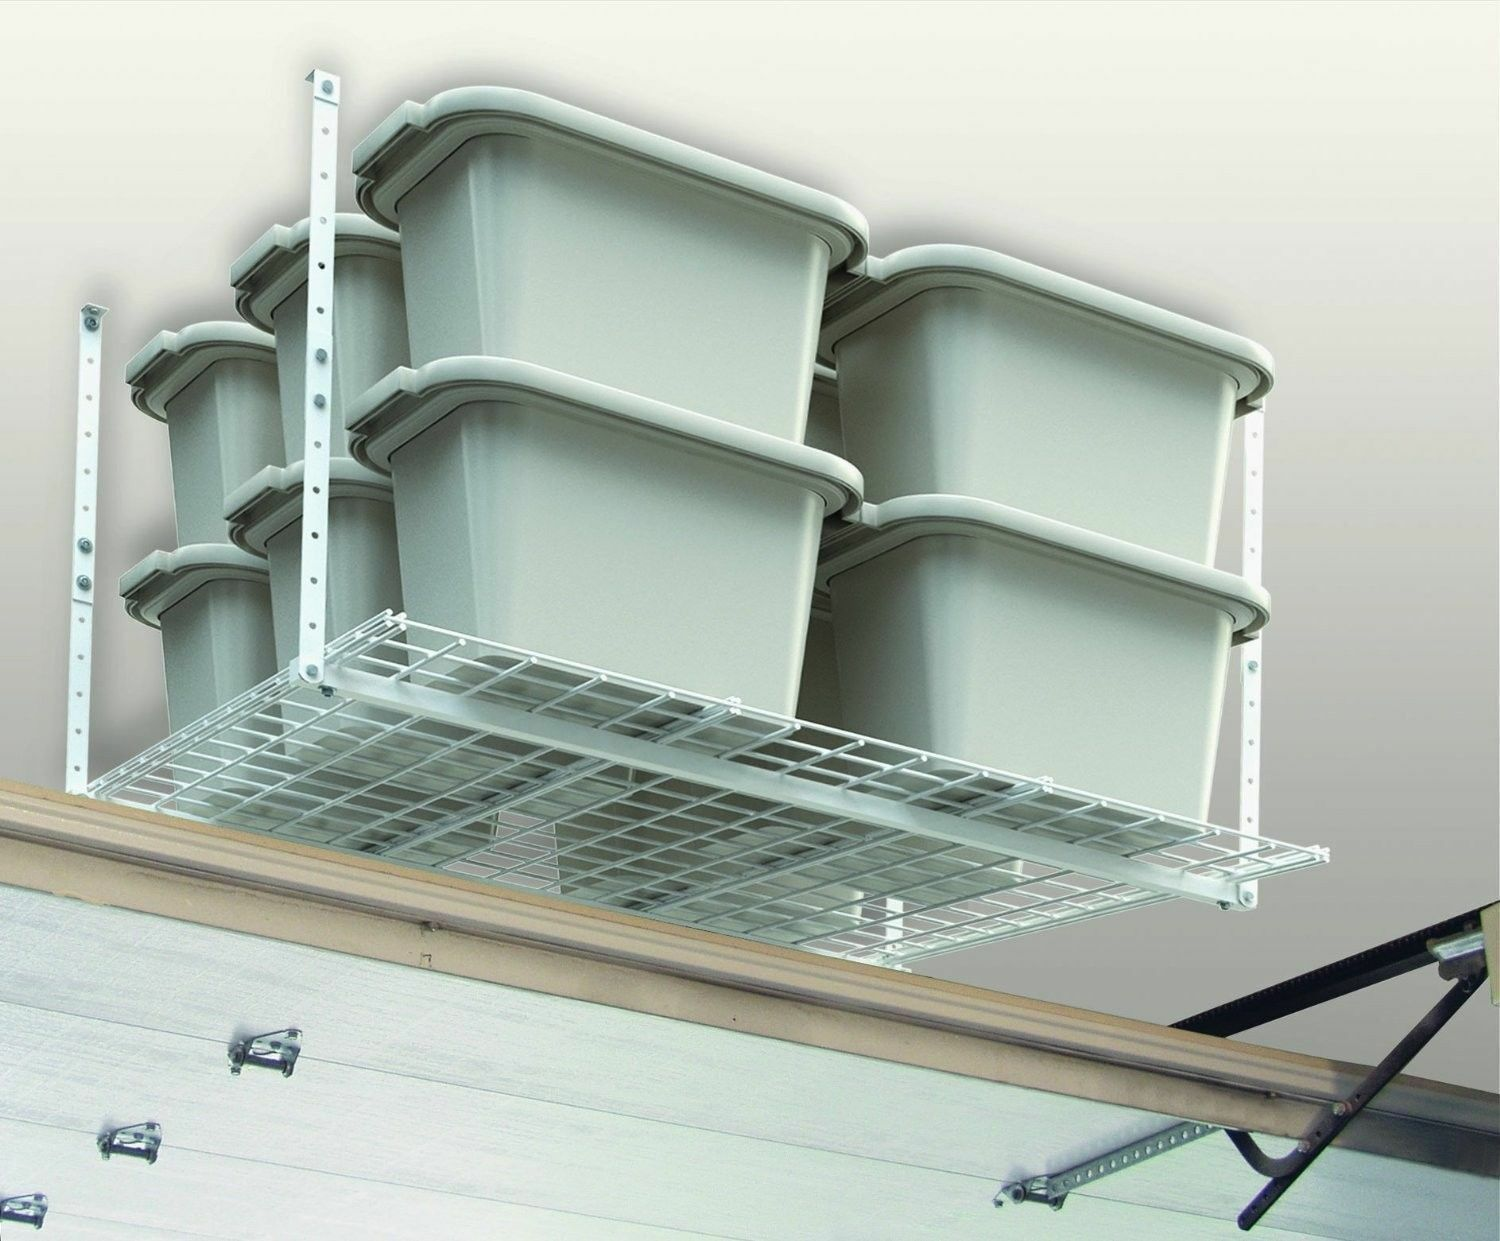 Ceiling Mounted 45 Inch Overhead Home Garage Storage Organization System NEW